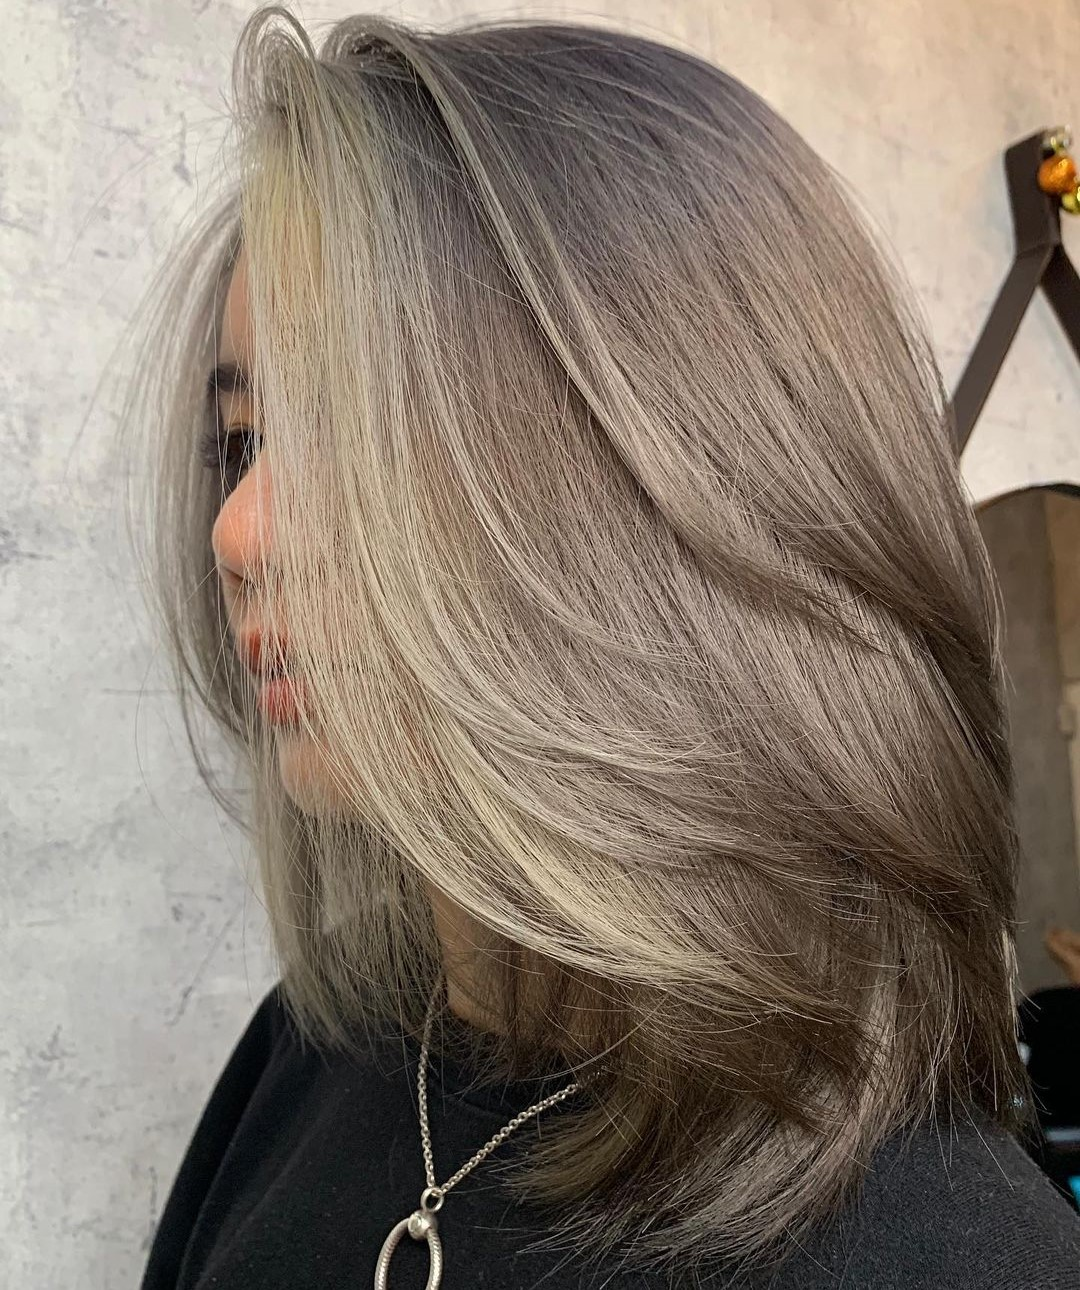 Shoulder-Length Hair with Voluminous Layers